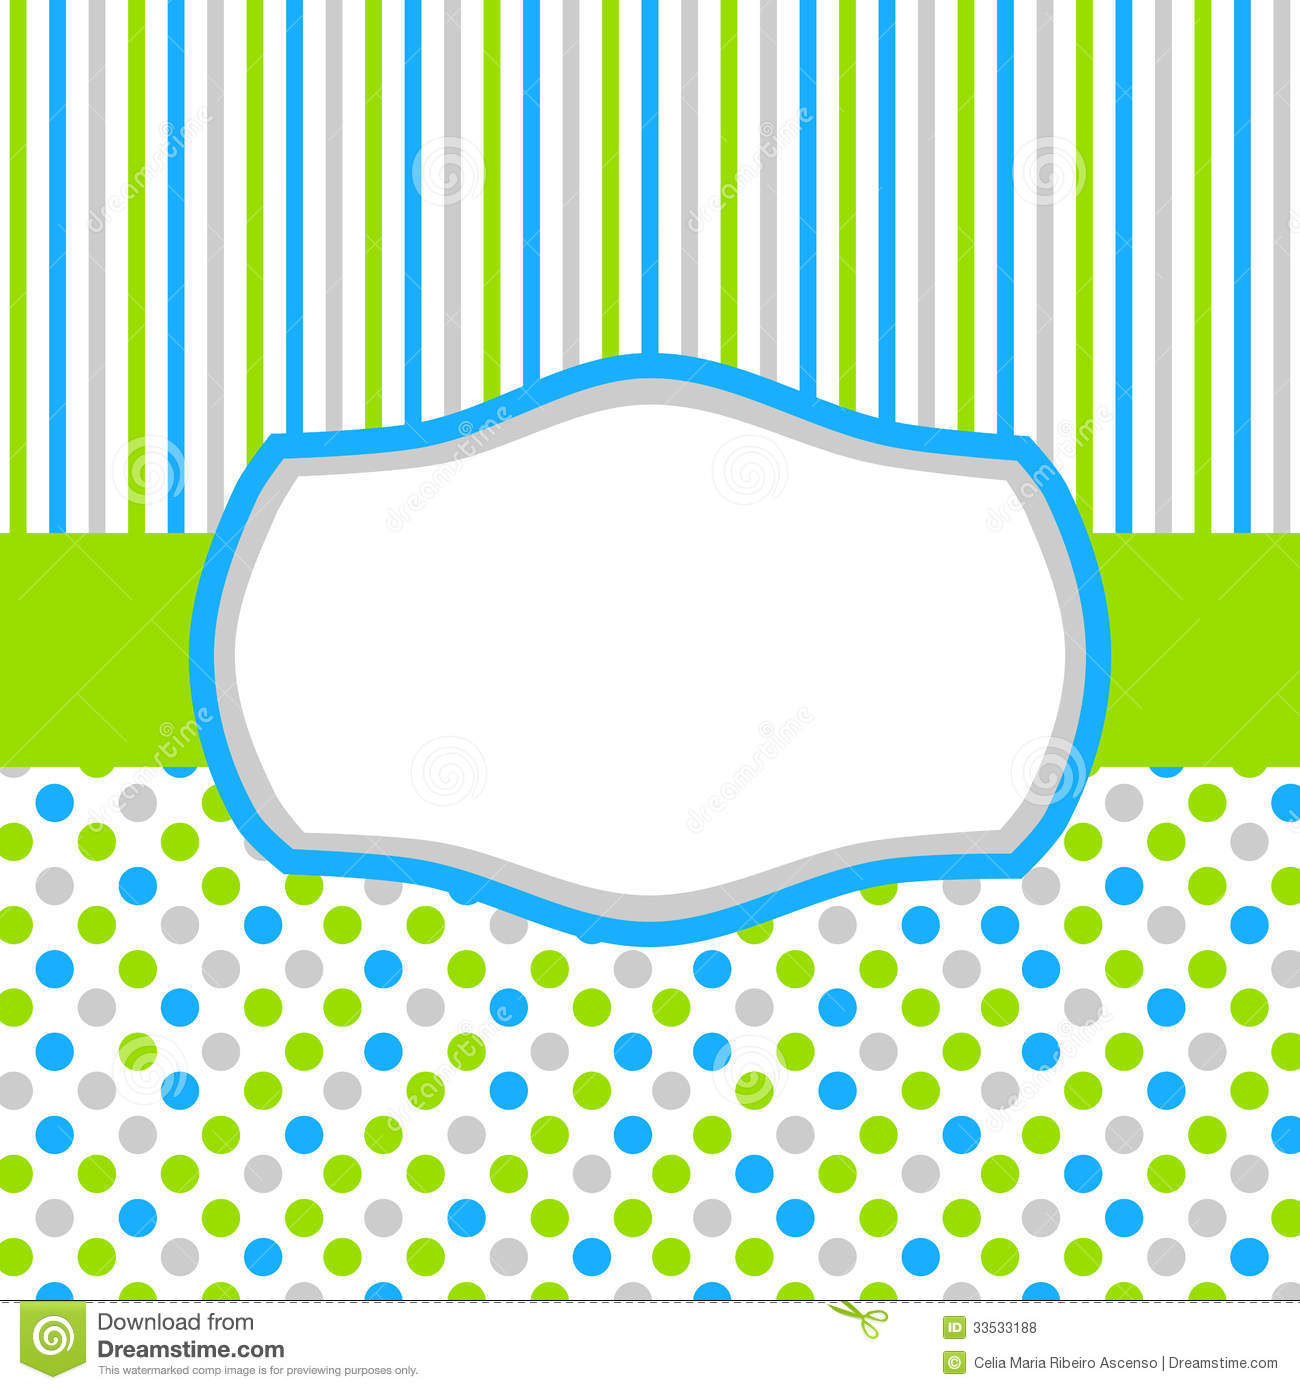 Square invitation card or tag with polka dots, stripes and a frame for ...